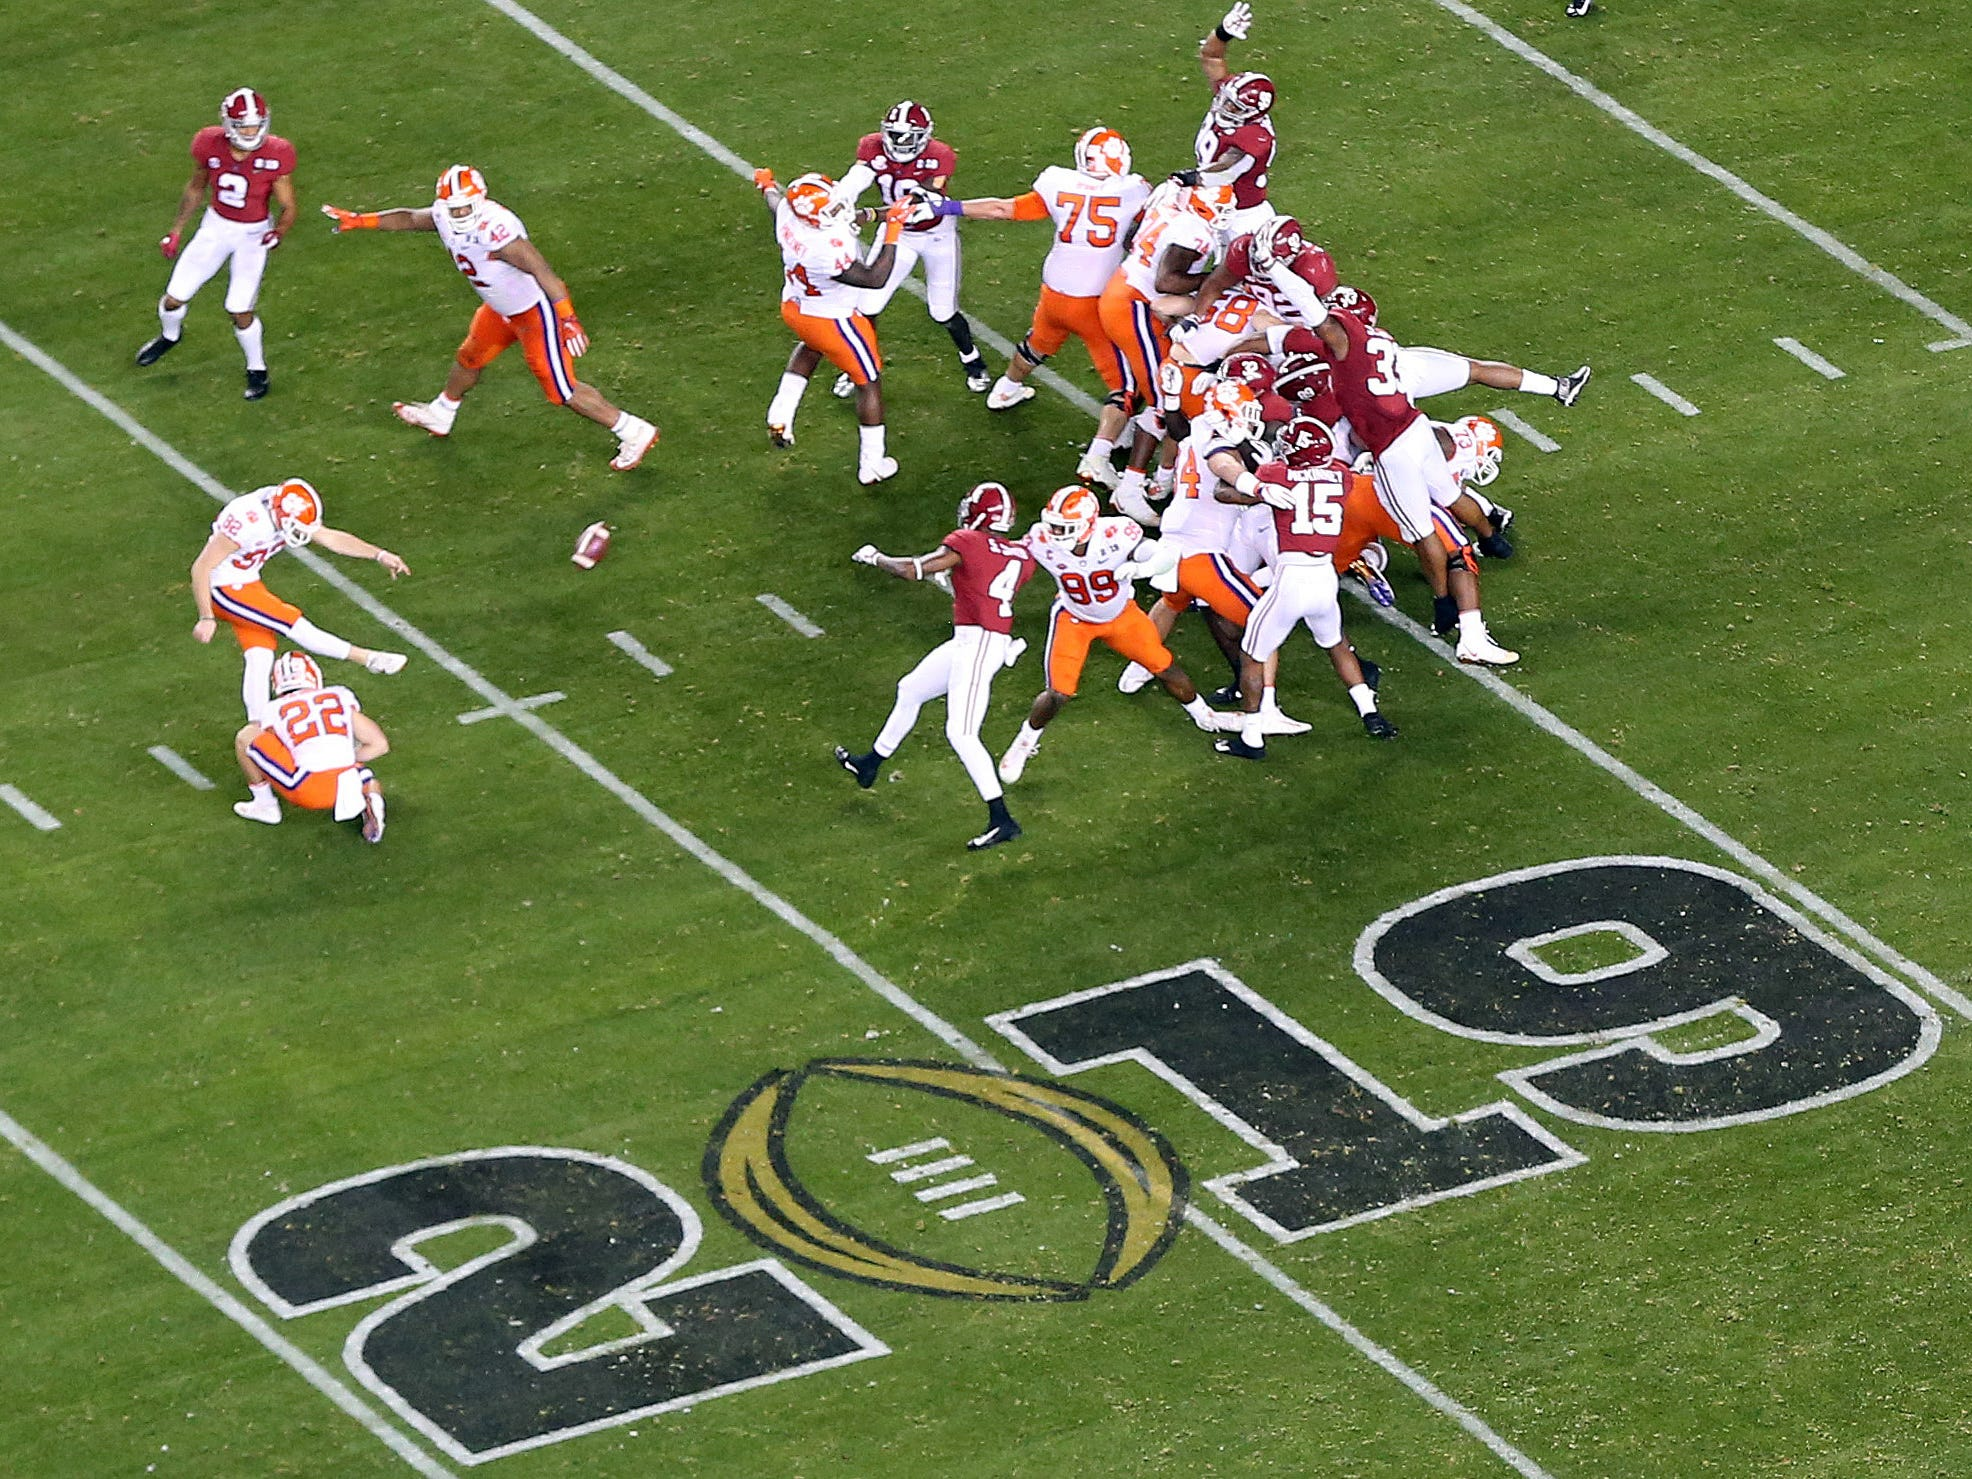 Jan 7, 2019; Santa Clara, CA, USA; Clemson Tigers kicker Greg Huegel (92) kicks a field goal in the second quarter against the Alabama Crimson Tide during the 2019 College Football Playoff Championship game at Levi's Stadium. Mandatory Credit: James Lang-USA TODAY Sports